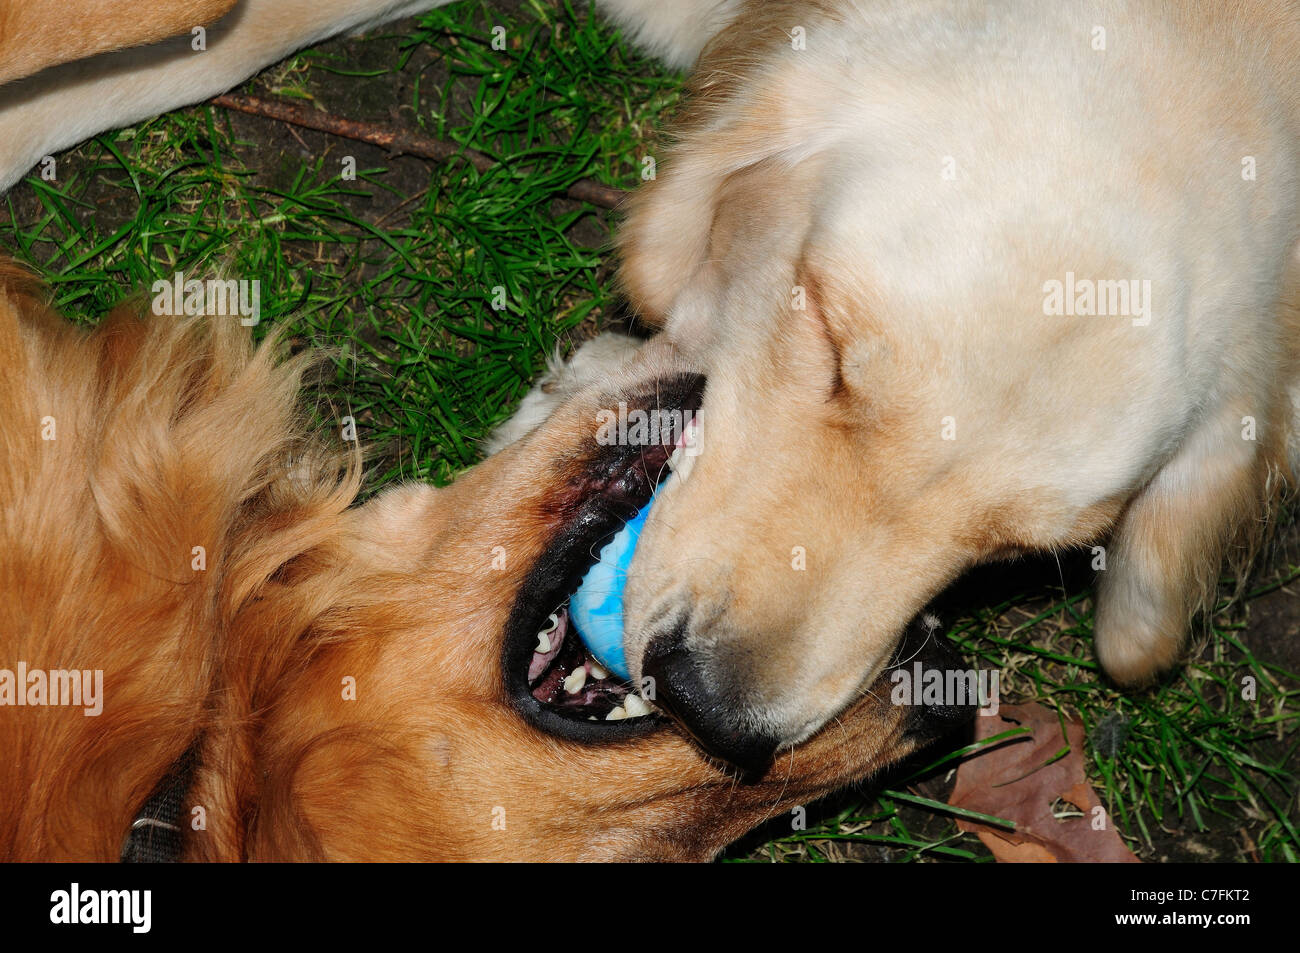 American and British-type Golden Retrievers wrestling for control of ball. - Stock Image